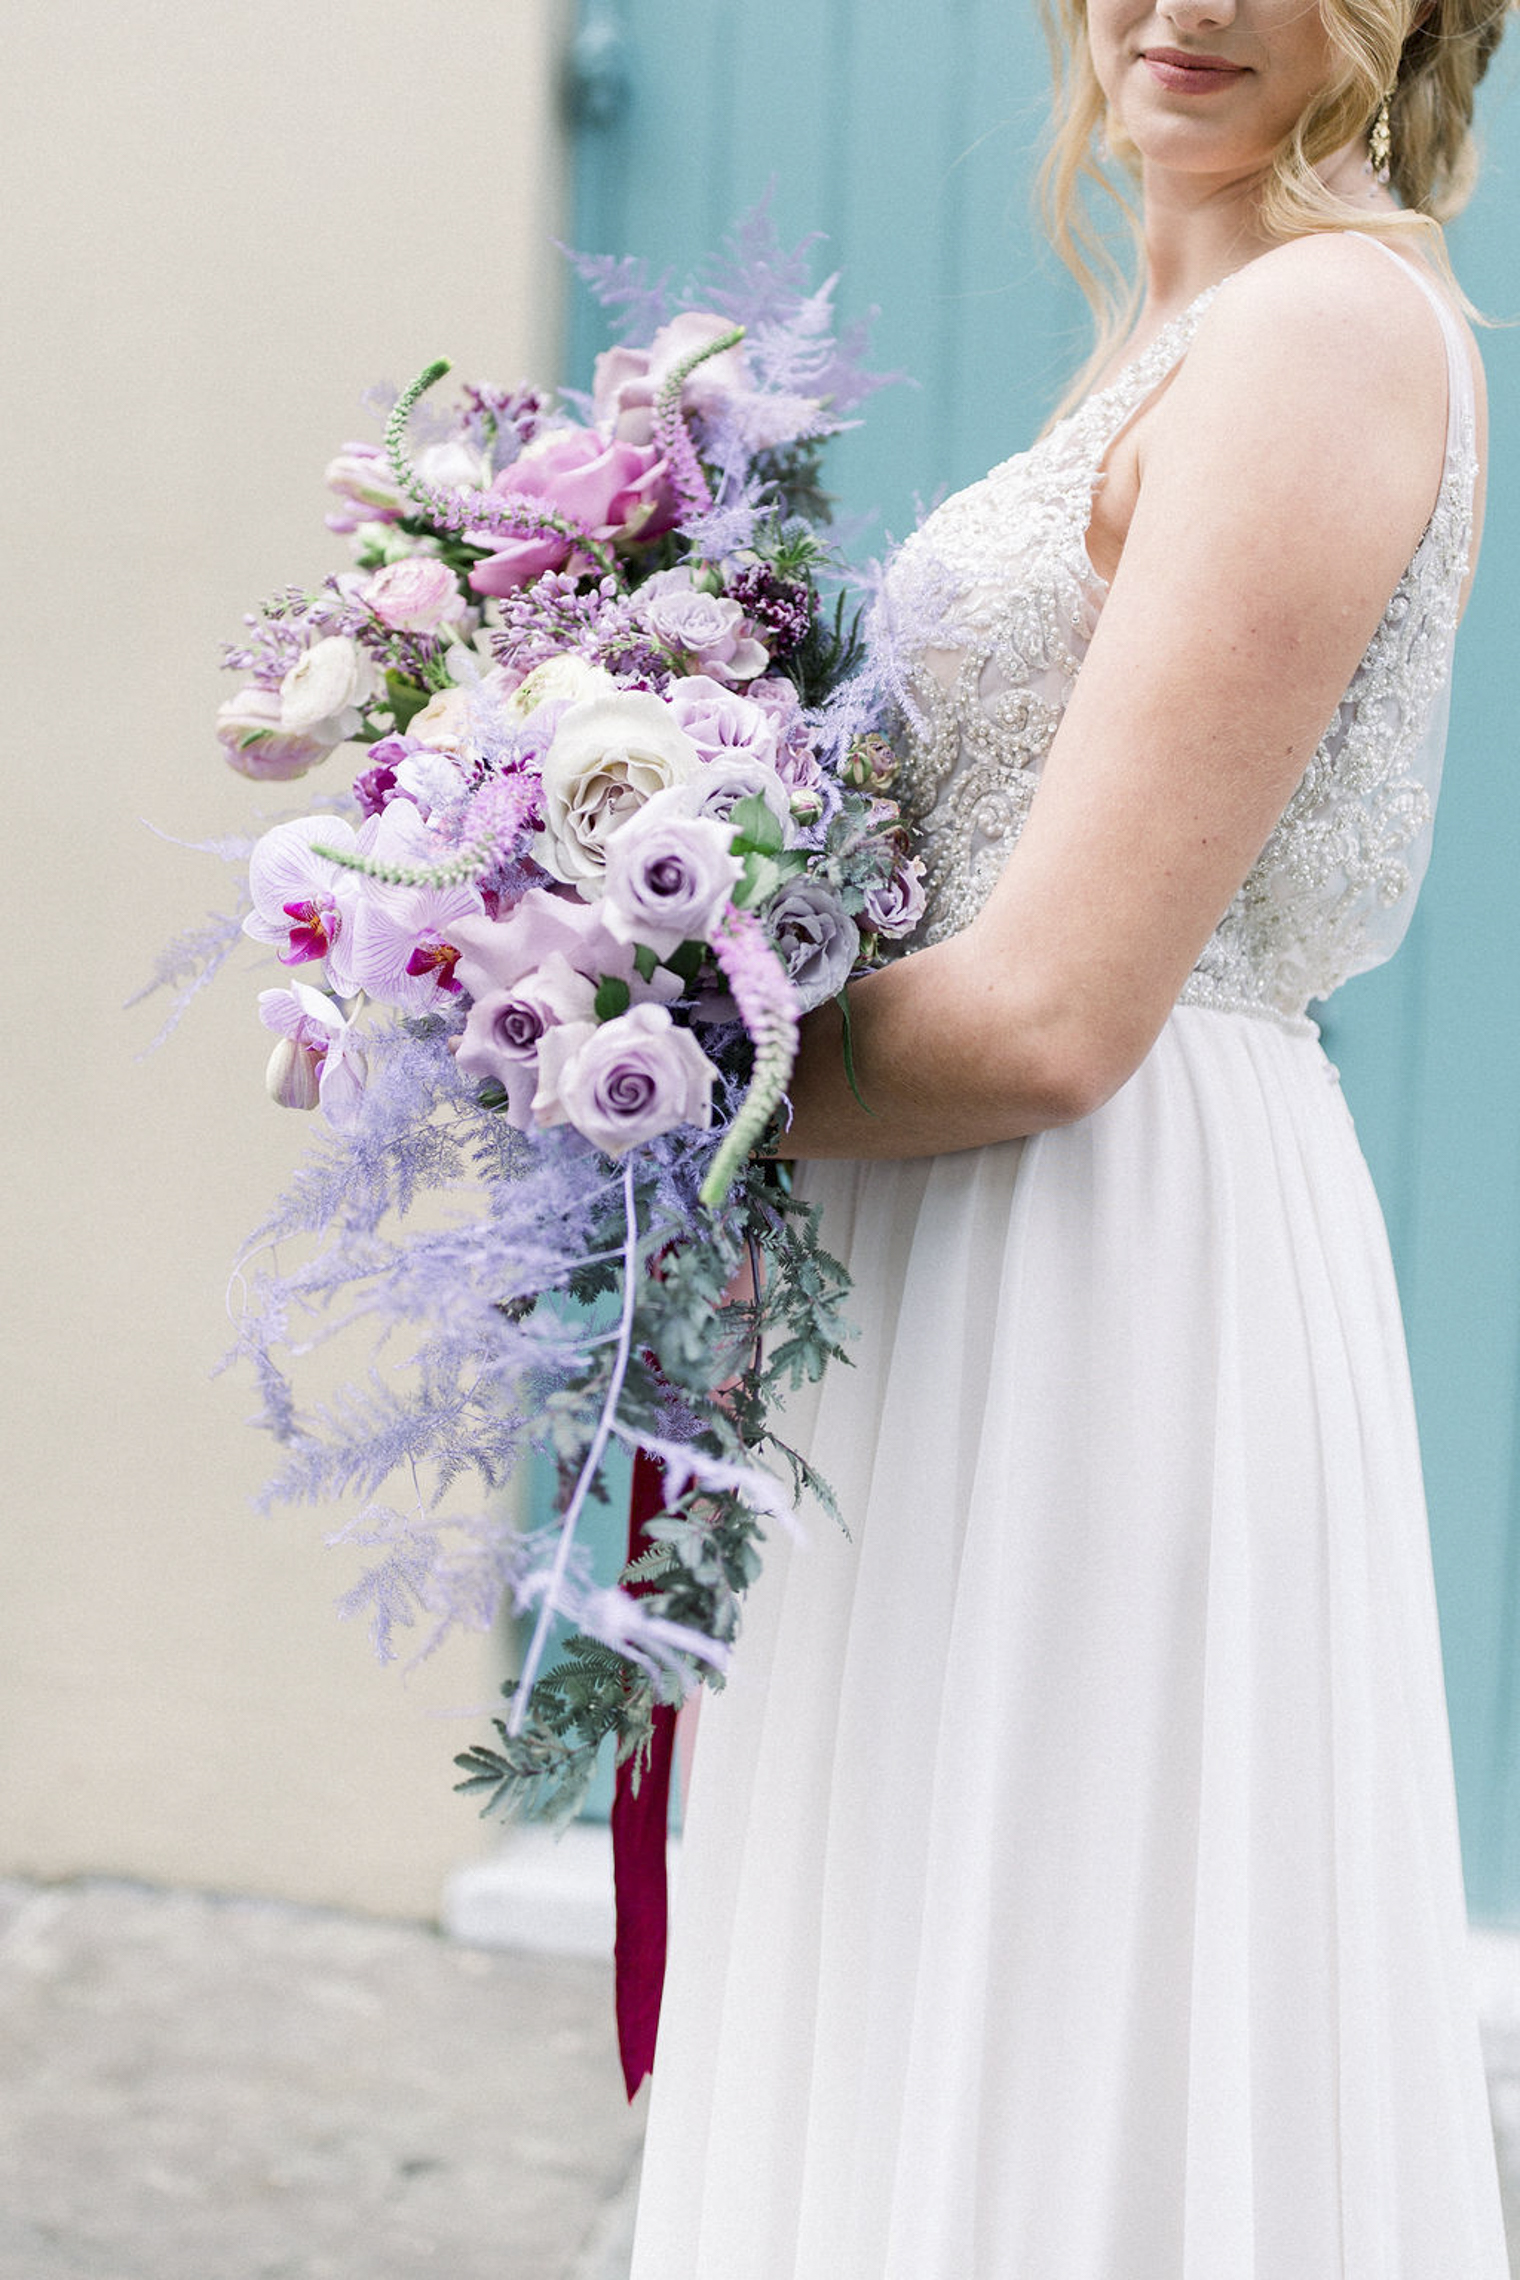 Increase Booking with Gorgeous Proposals from Curate - Lilac Wedding Bouquet